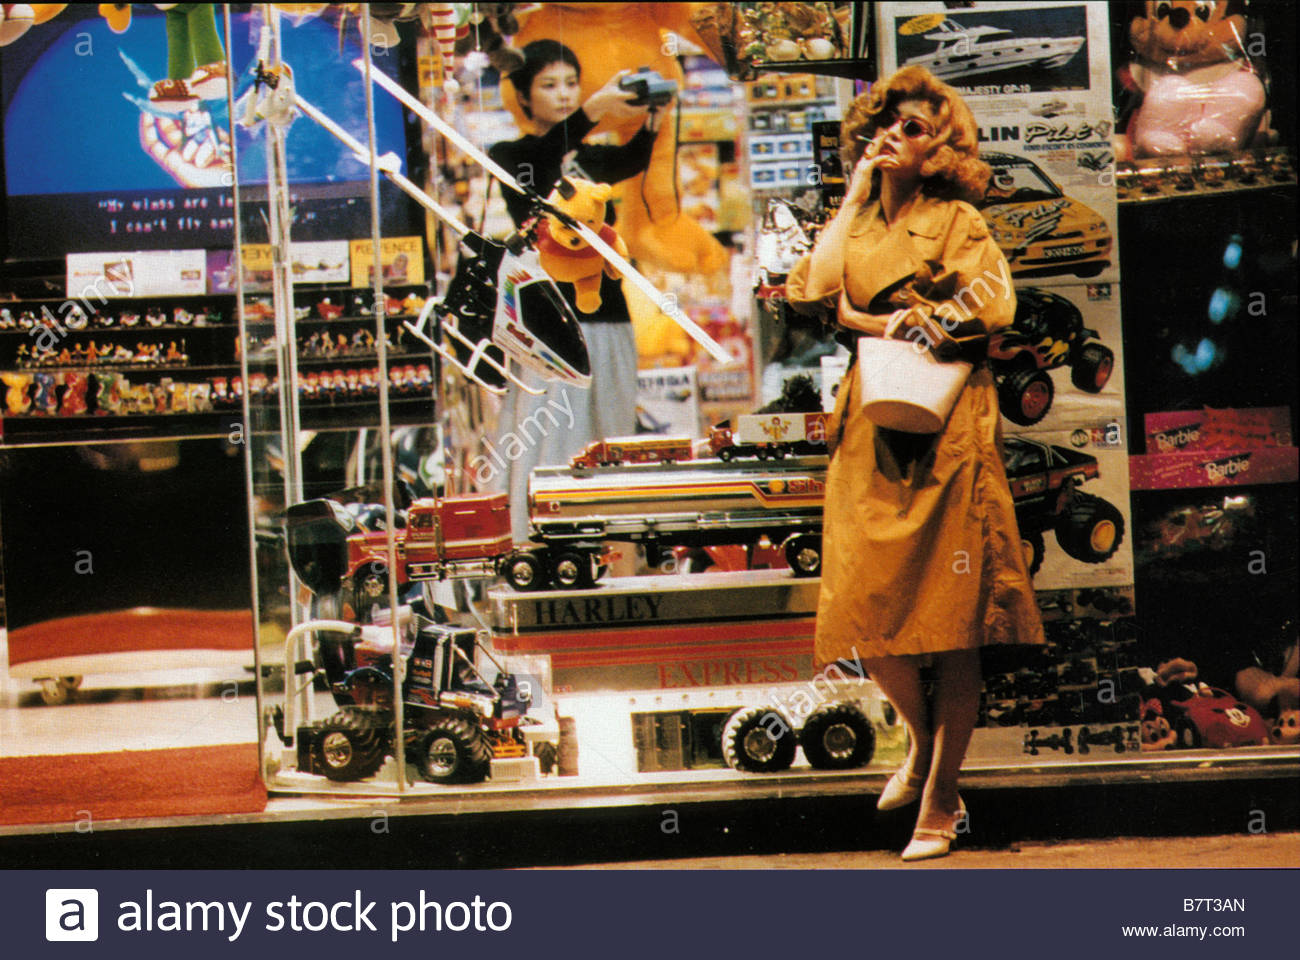 chungking express download vostfr